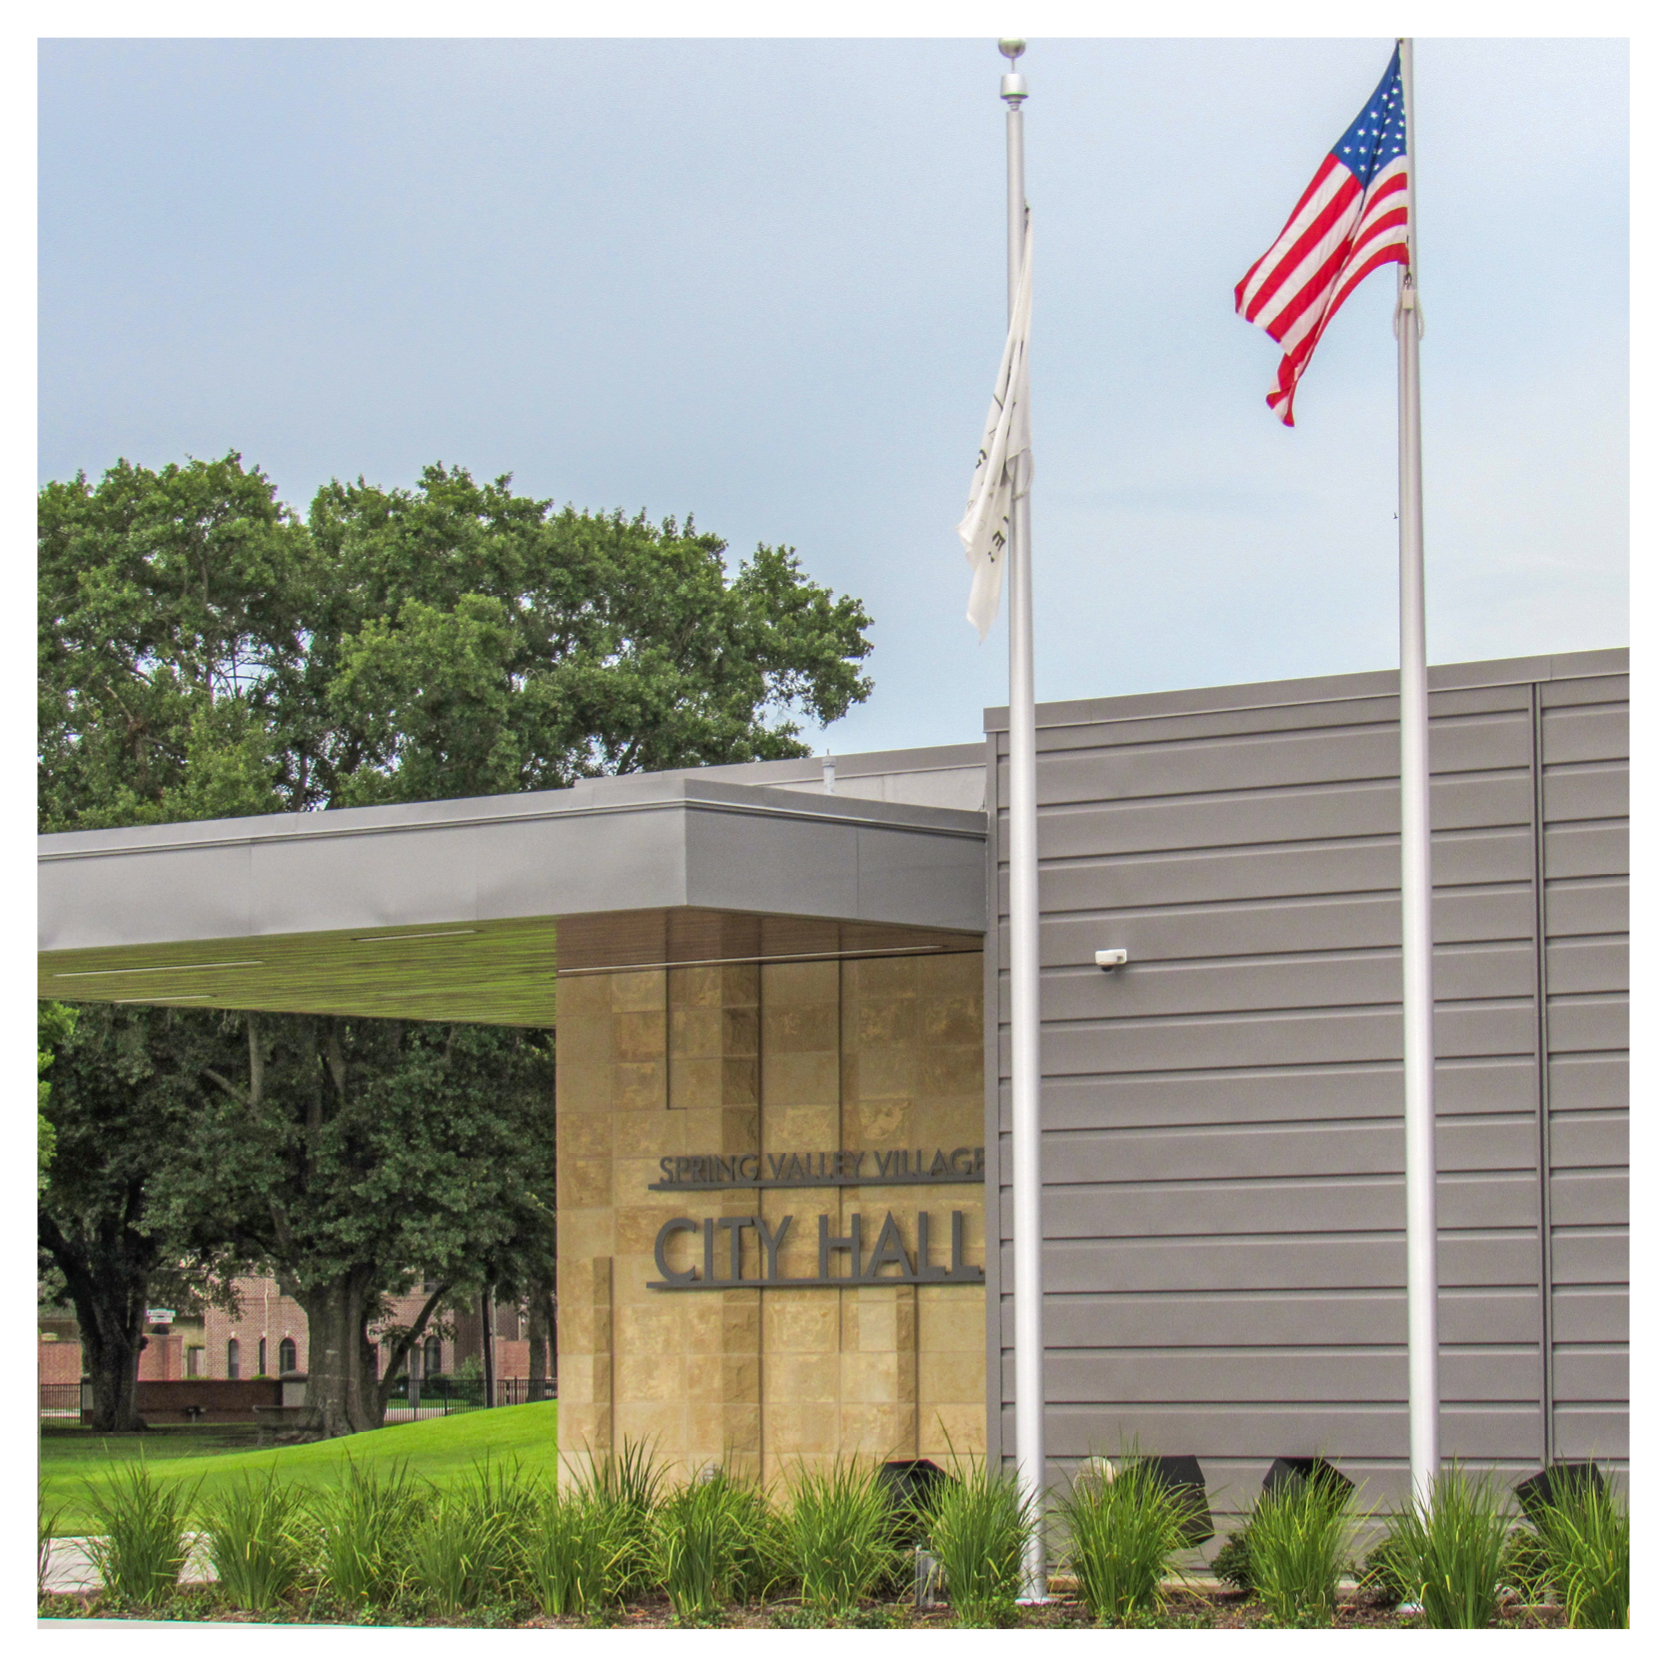 Spring Valley City Hall